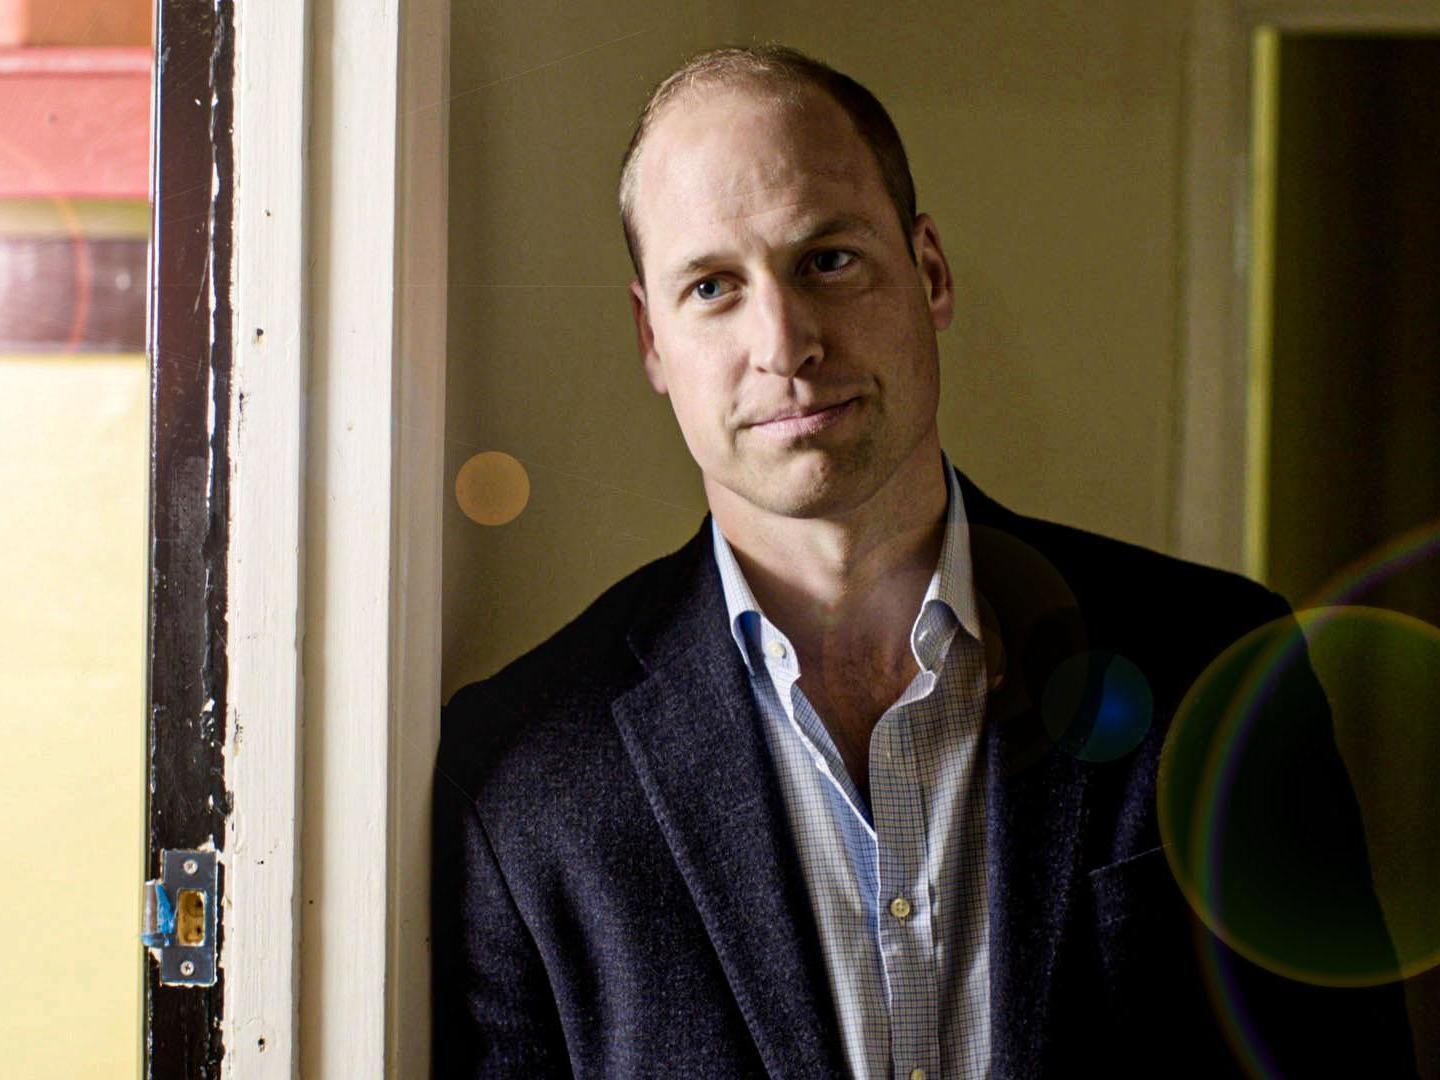 Football, Prince William and Our Mental Health: Viewers applaud 'tough' and 'powerful' documentary